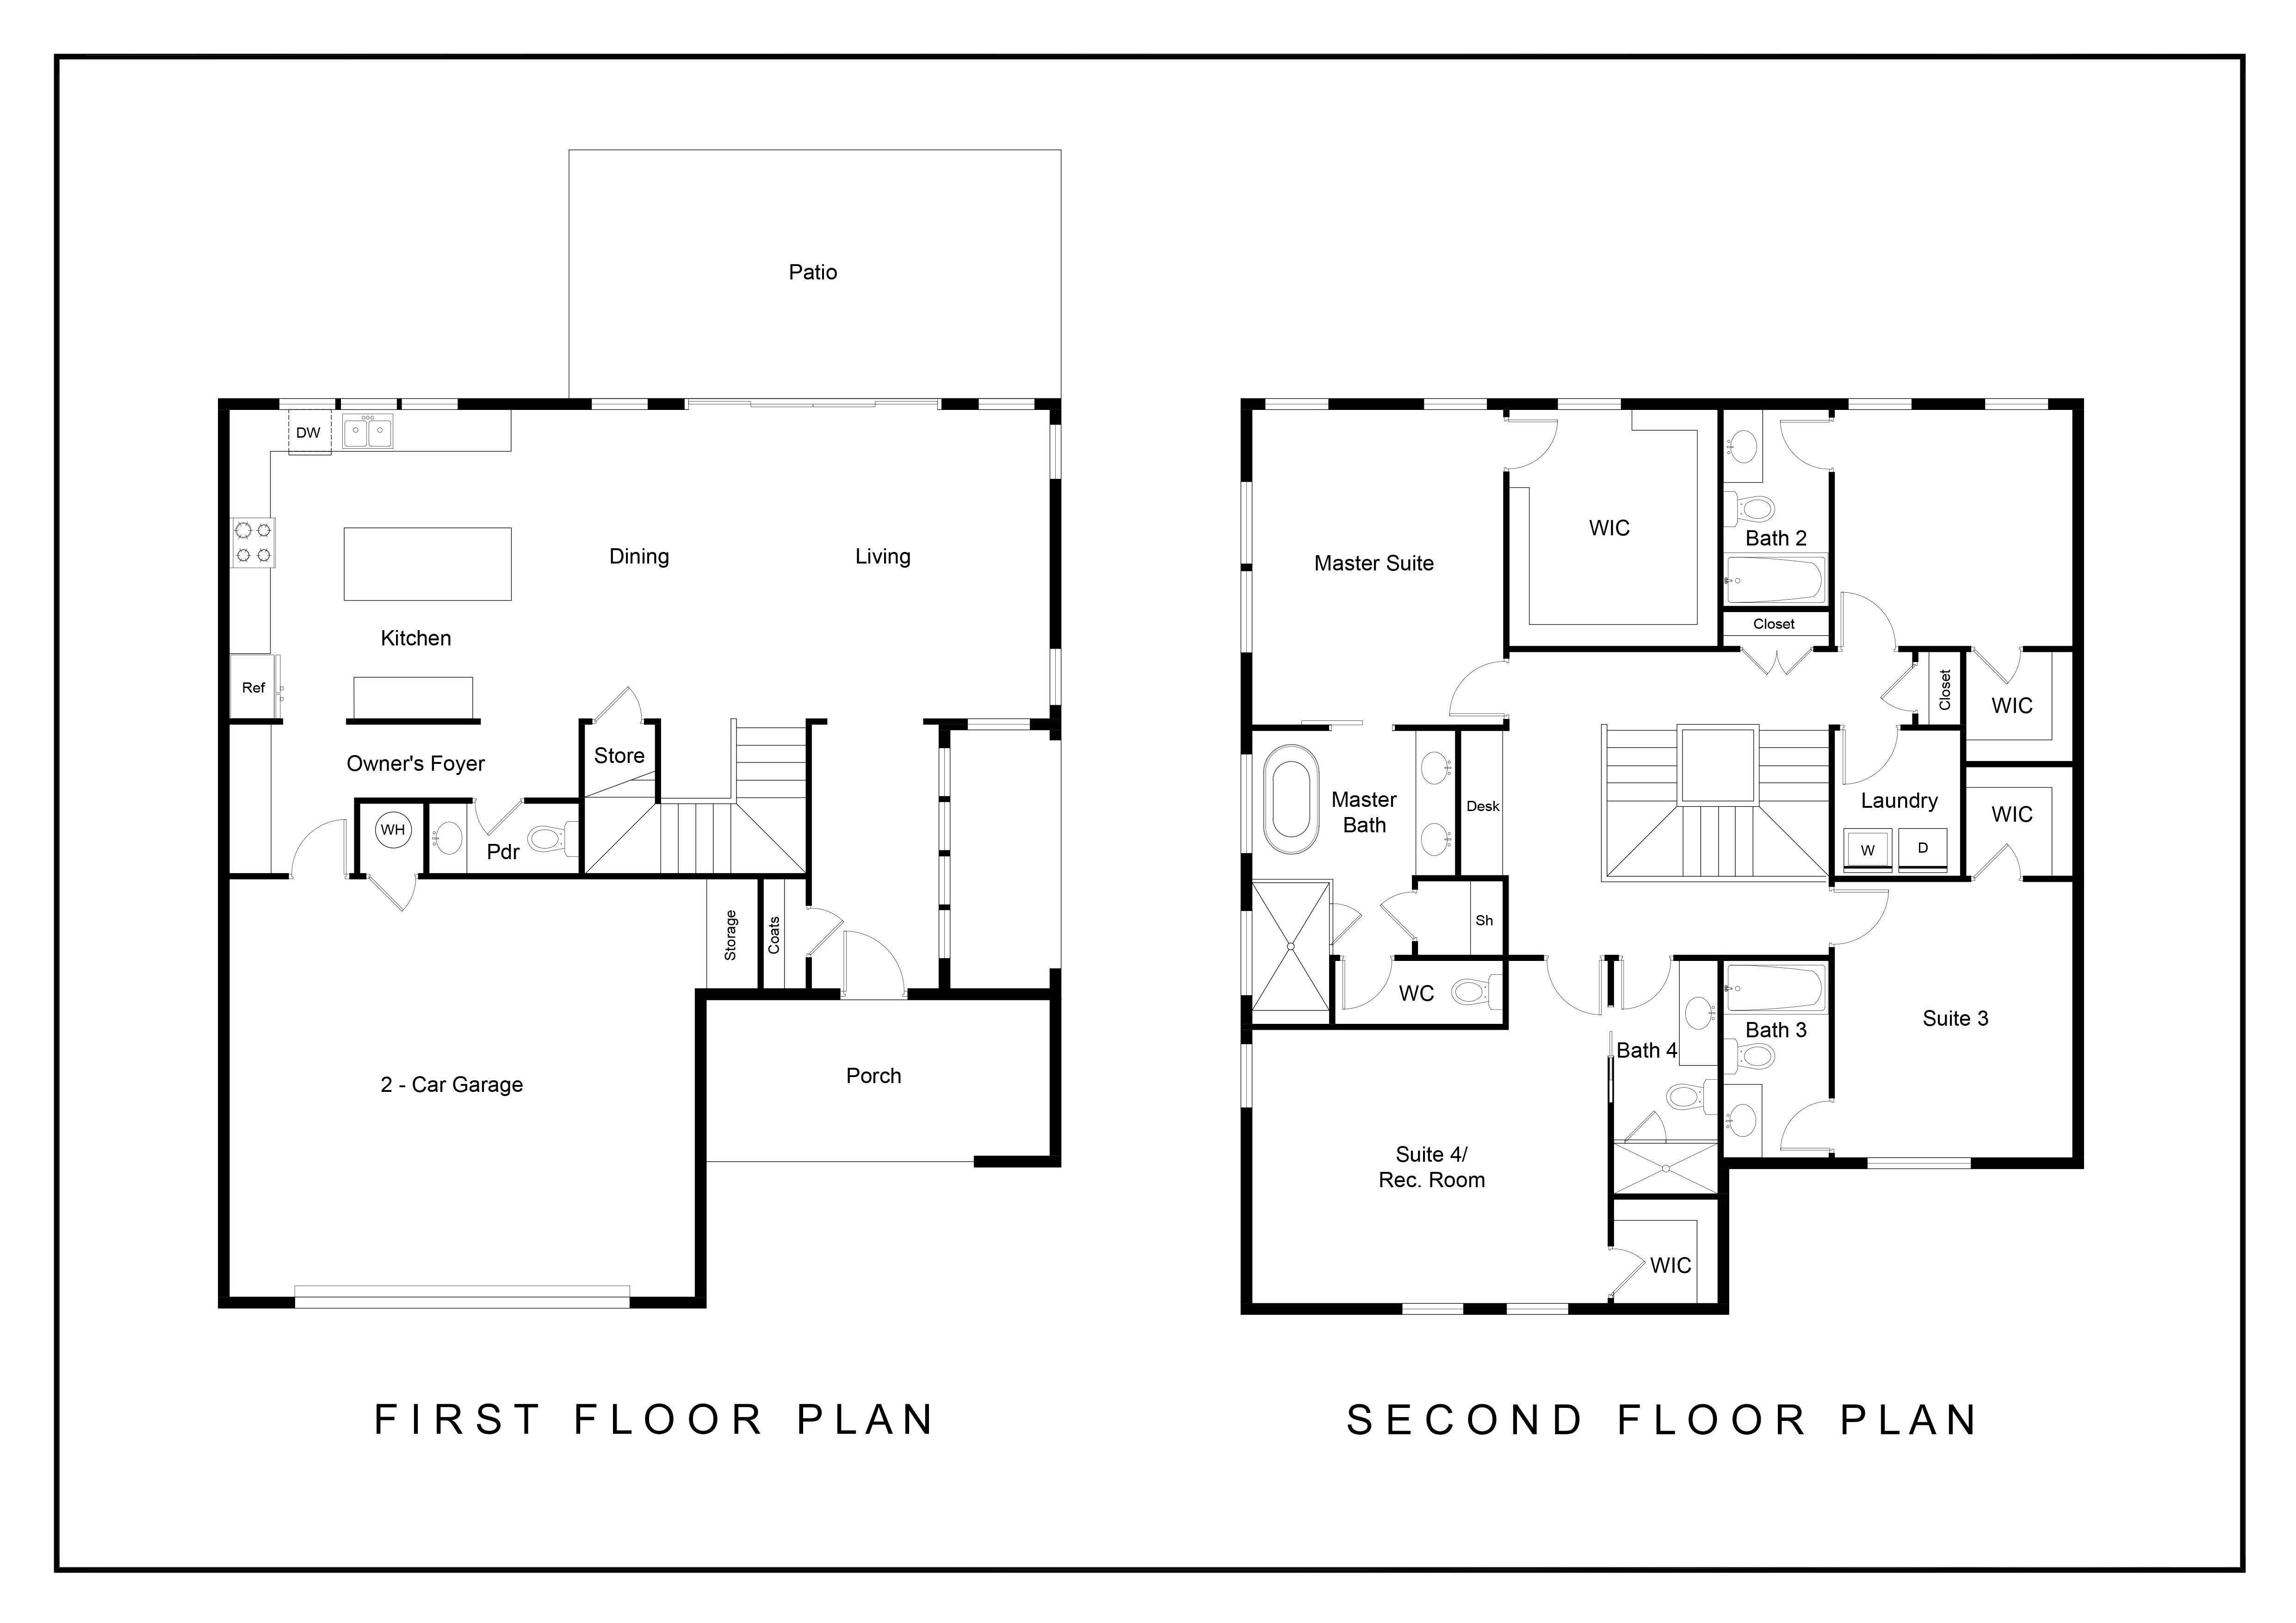 Floorplan - Campus Page 1